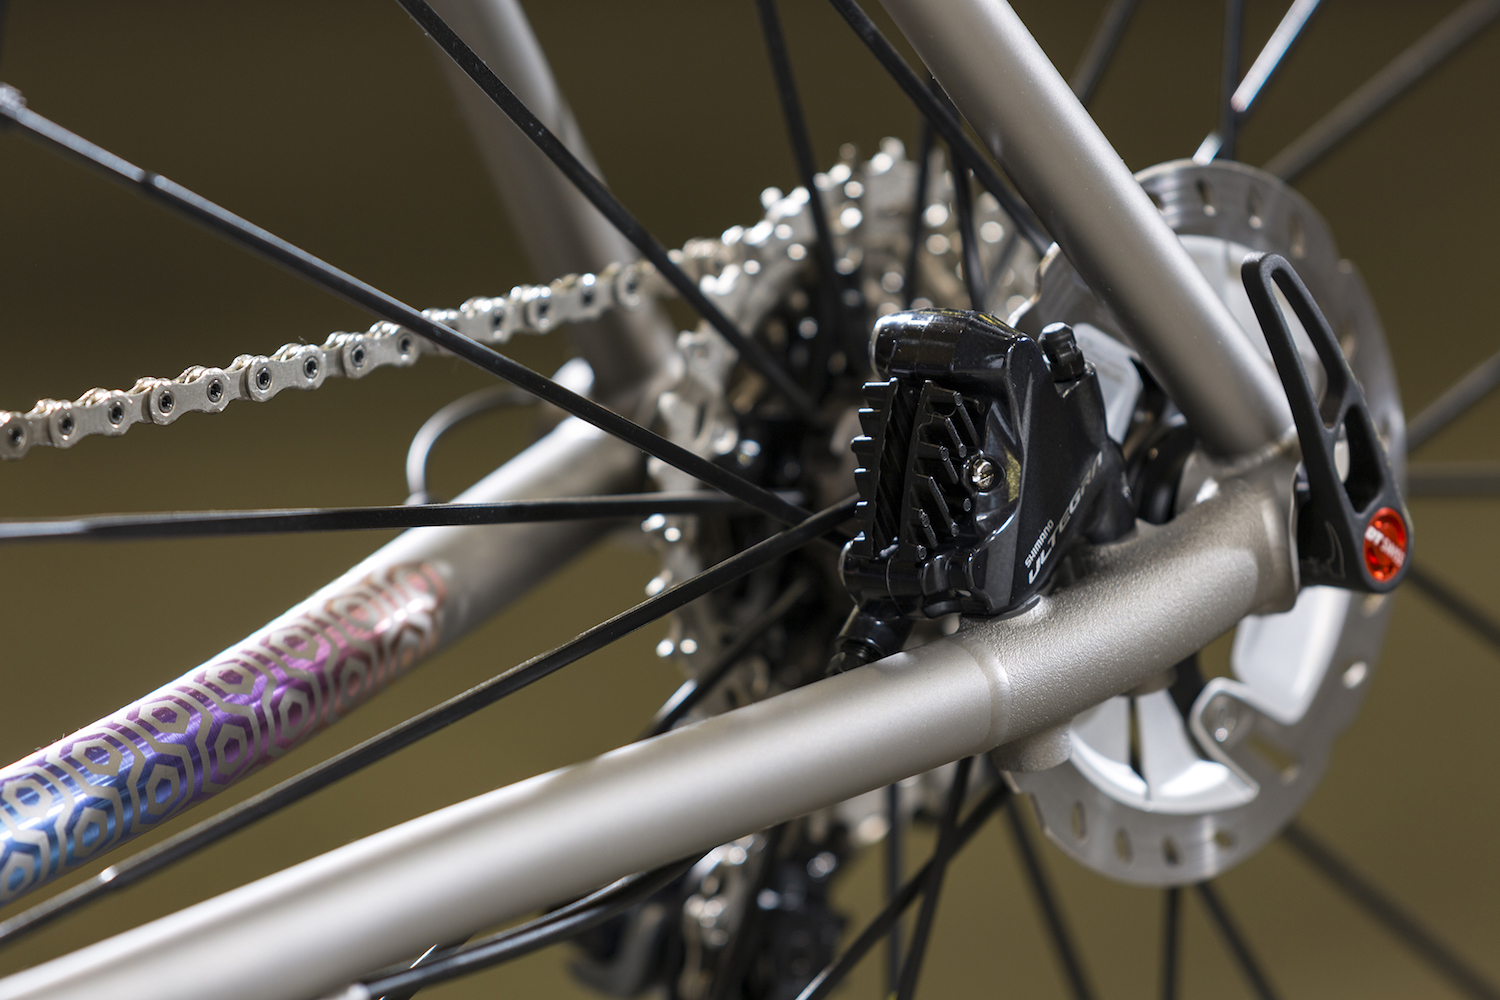 Rear wheel and brake alignment come courtesy of a proprietary 6/4 titanium 3D-printed flat-mount disc brake mount